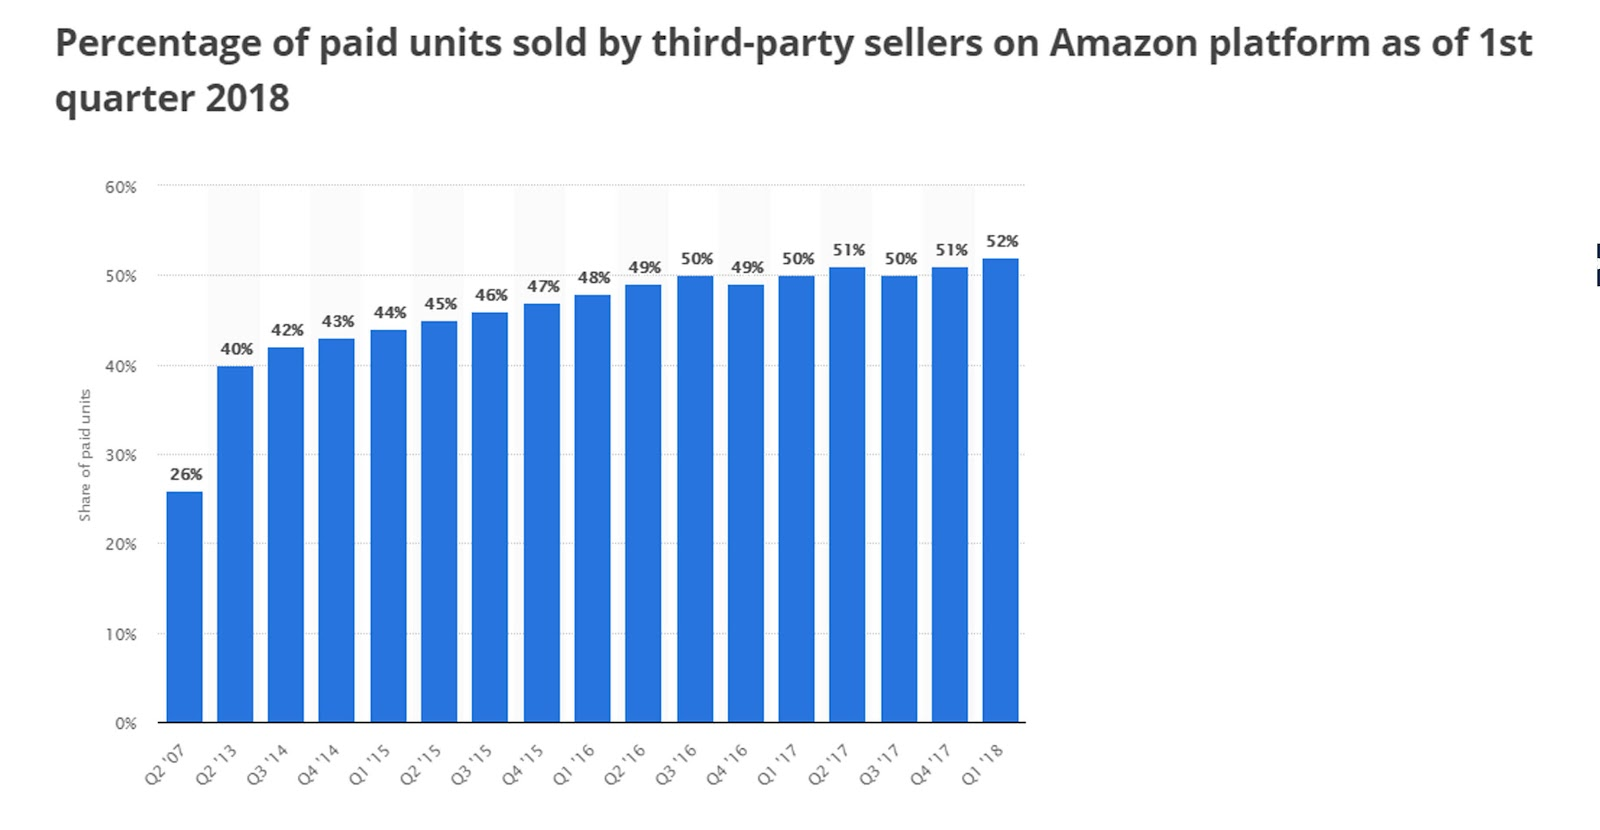 Amazon vs eBay 3rd party seller numbers